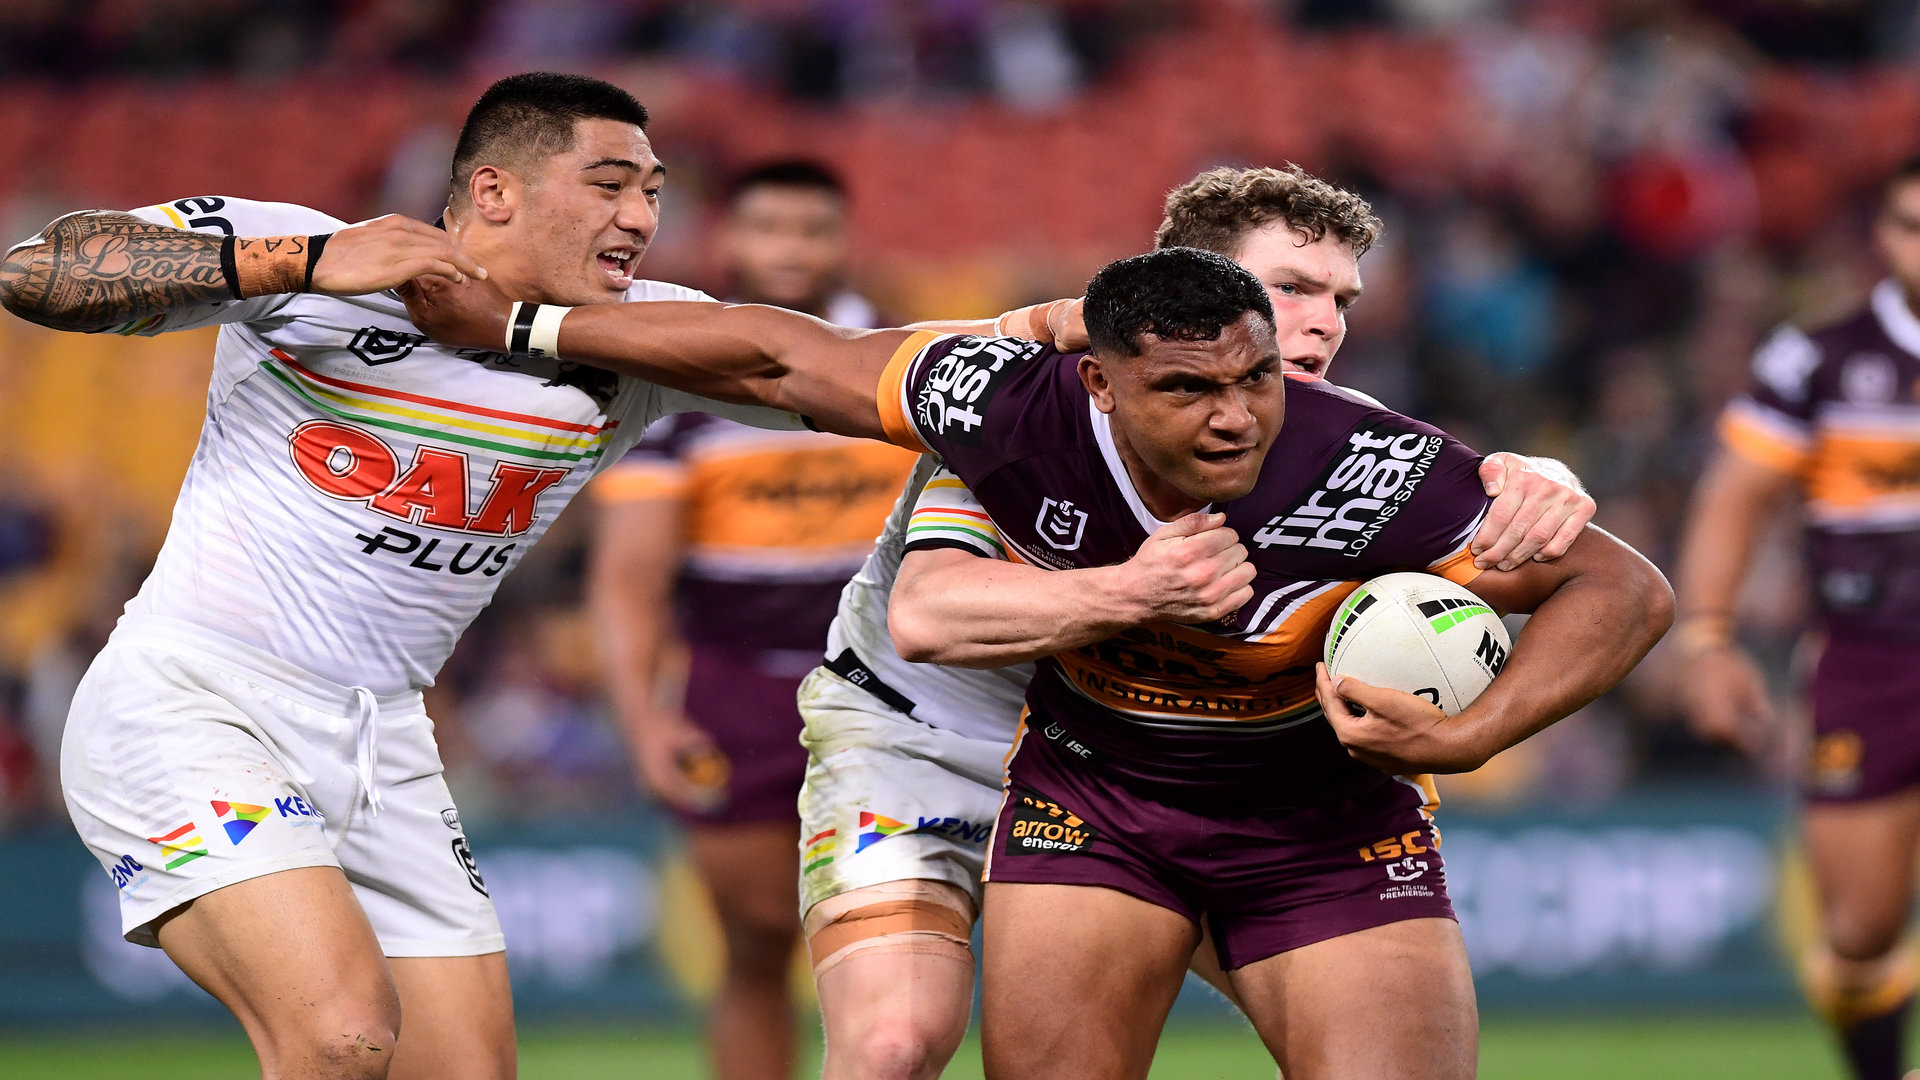 Broncos v Panthers: Legends slam decision to suspend Tevita Pangai Junior after alleged crusher tackle